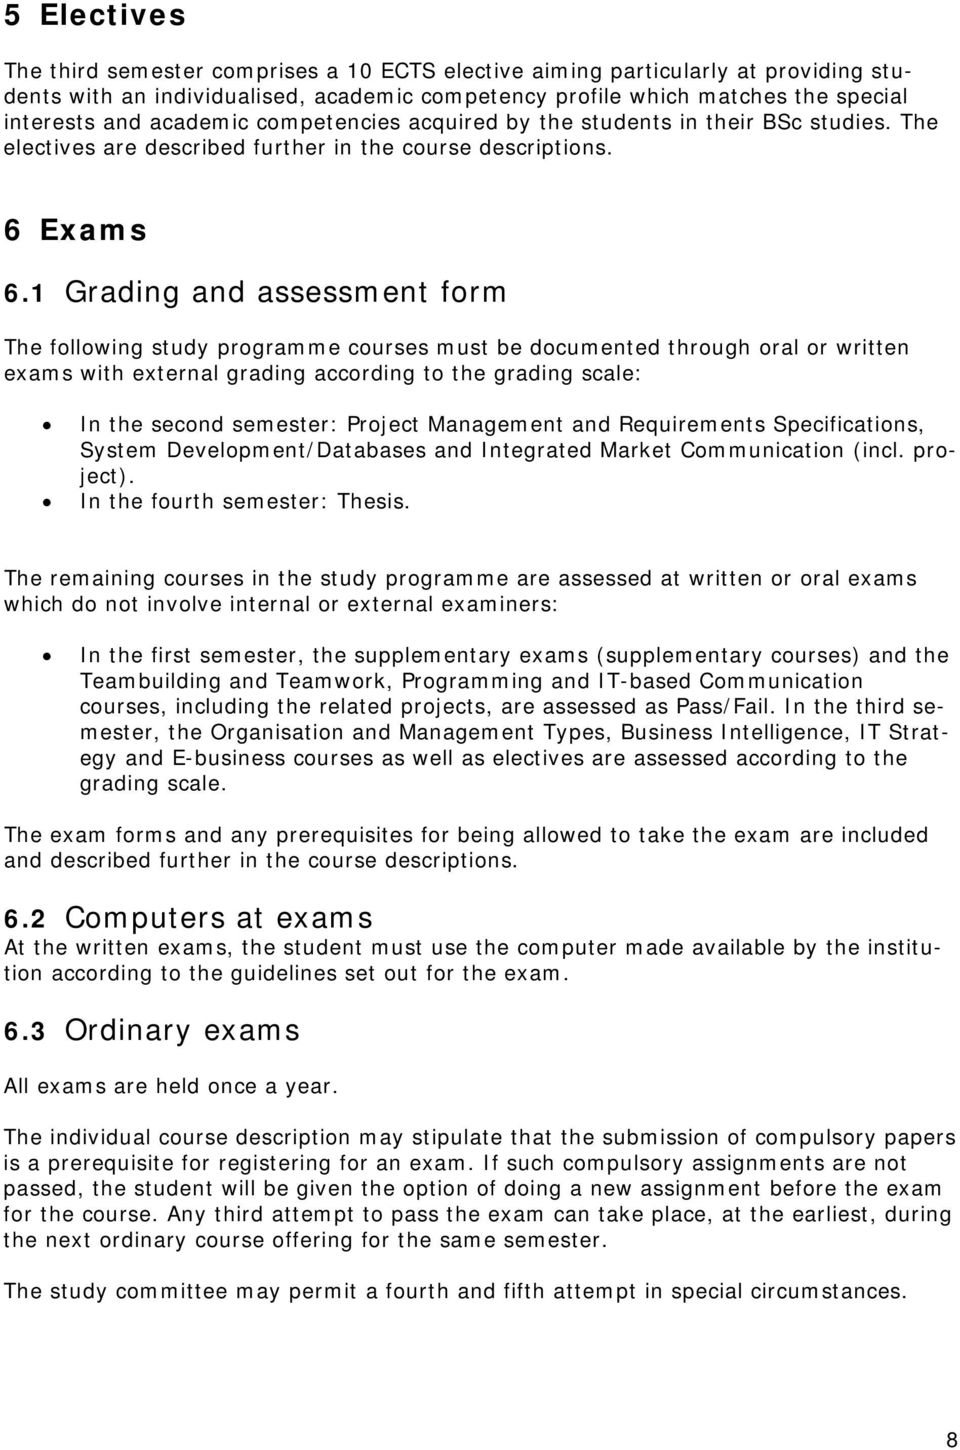 1 Grading and assessment form The following study programme courses must be documented through oral or written exams with external grading according to the grading scale: In the second semester: